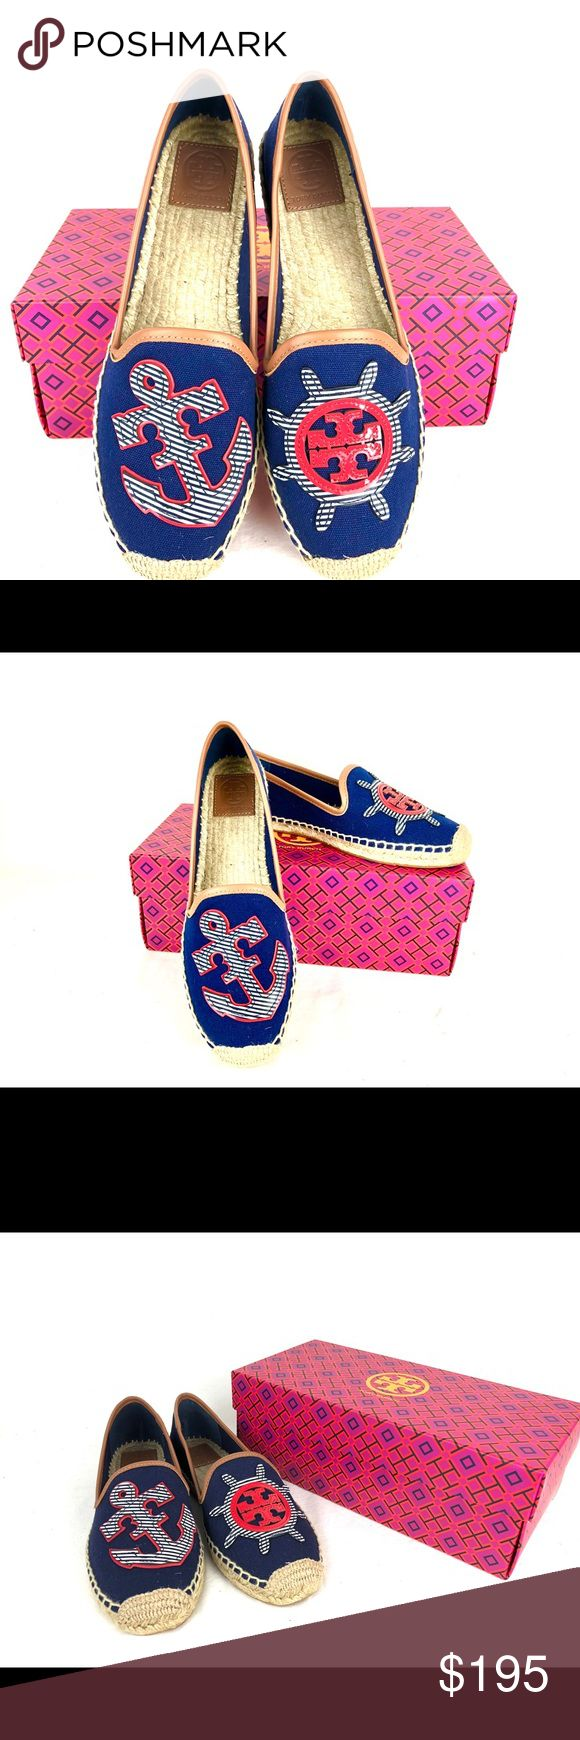 TORY BURCH Maritime Flat Espadrilles New with box! Nautical appliqués details these canvas Tory Burch Espadrilles. Leather piping trims the notches top line. Braided jute sidewall. Rubber sole. Fabric: Canvas. Size: 9.5 Tory Burch Shoes